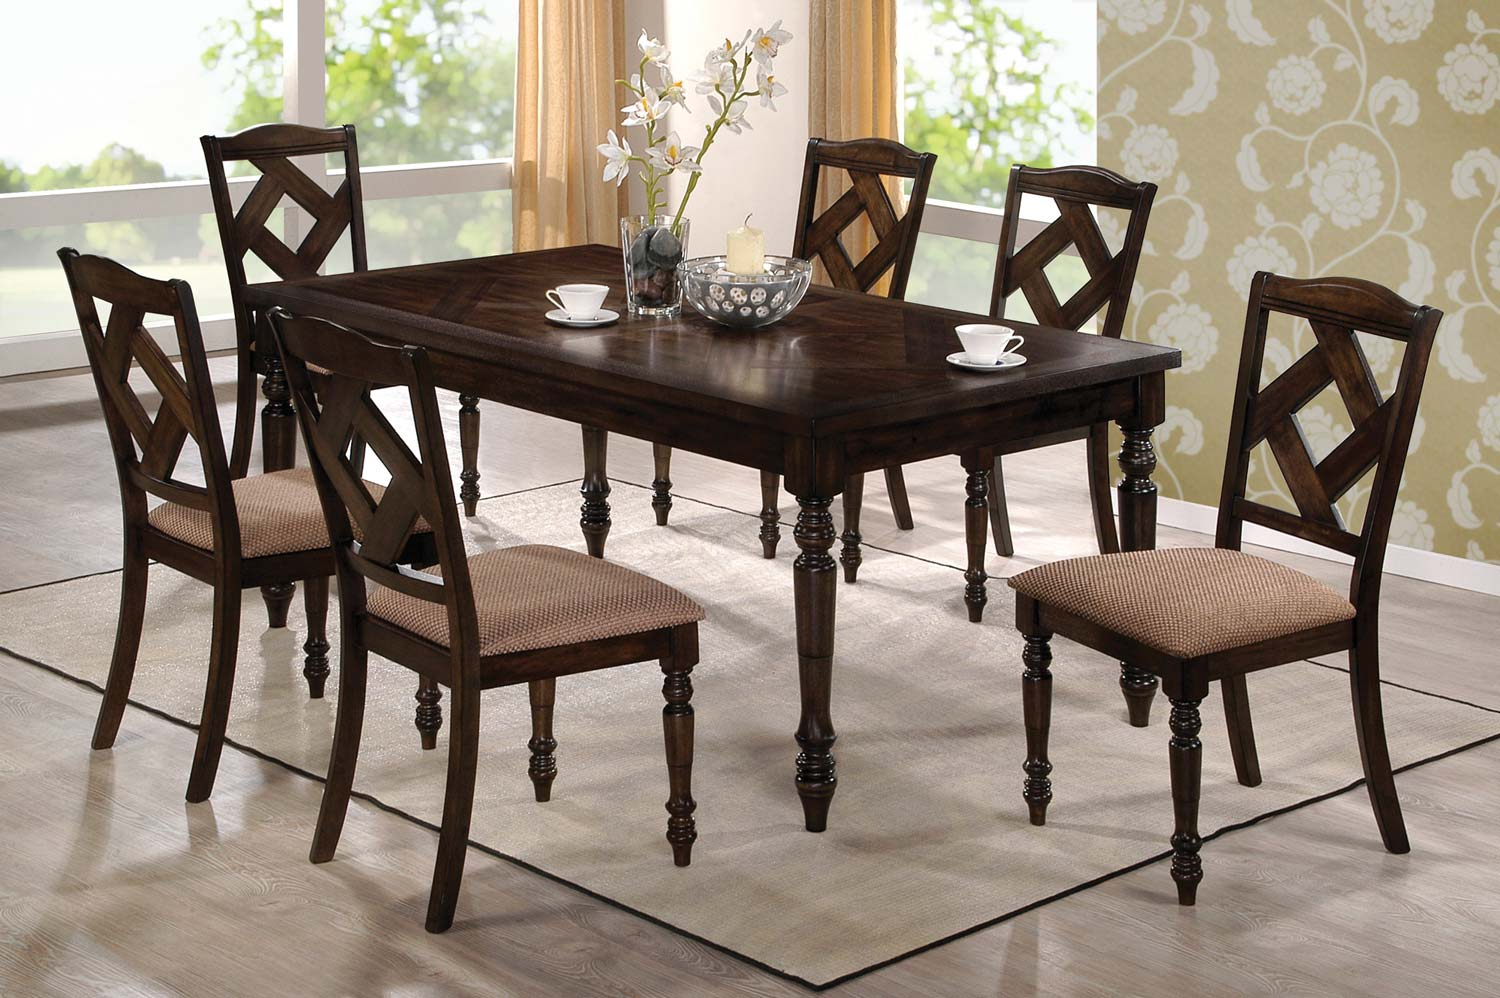 Coaster 103381 Dining Set - Brown Ash